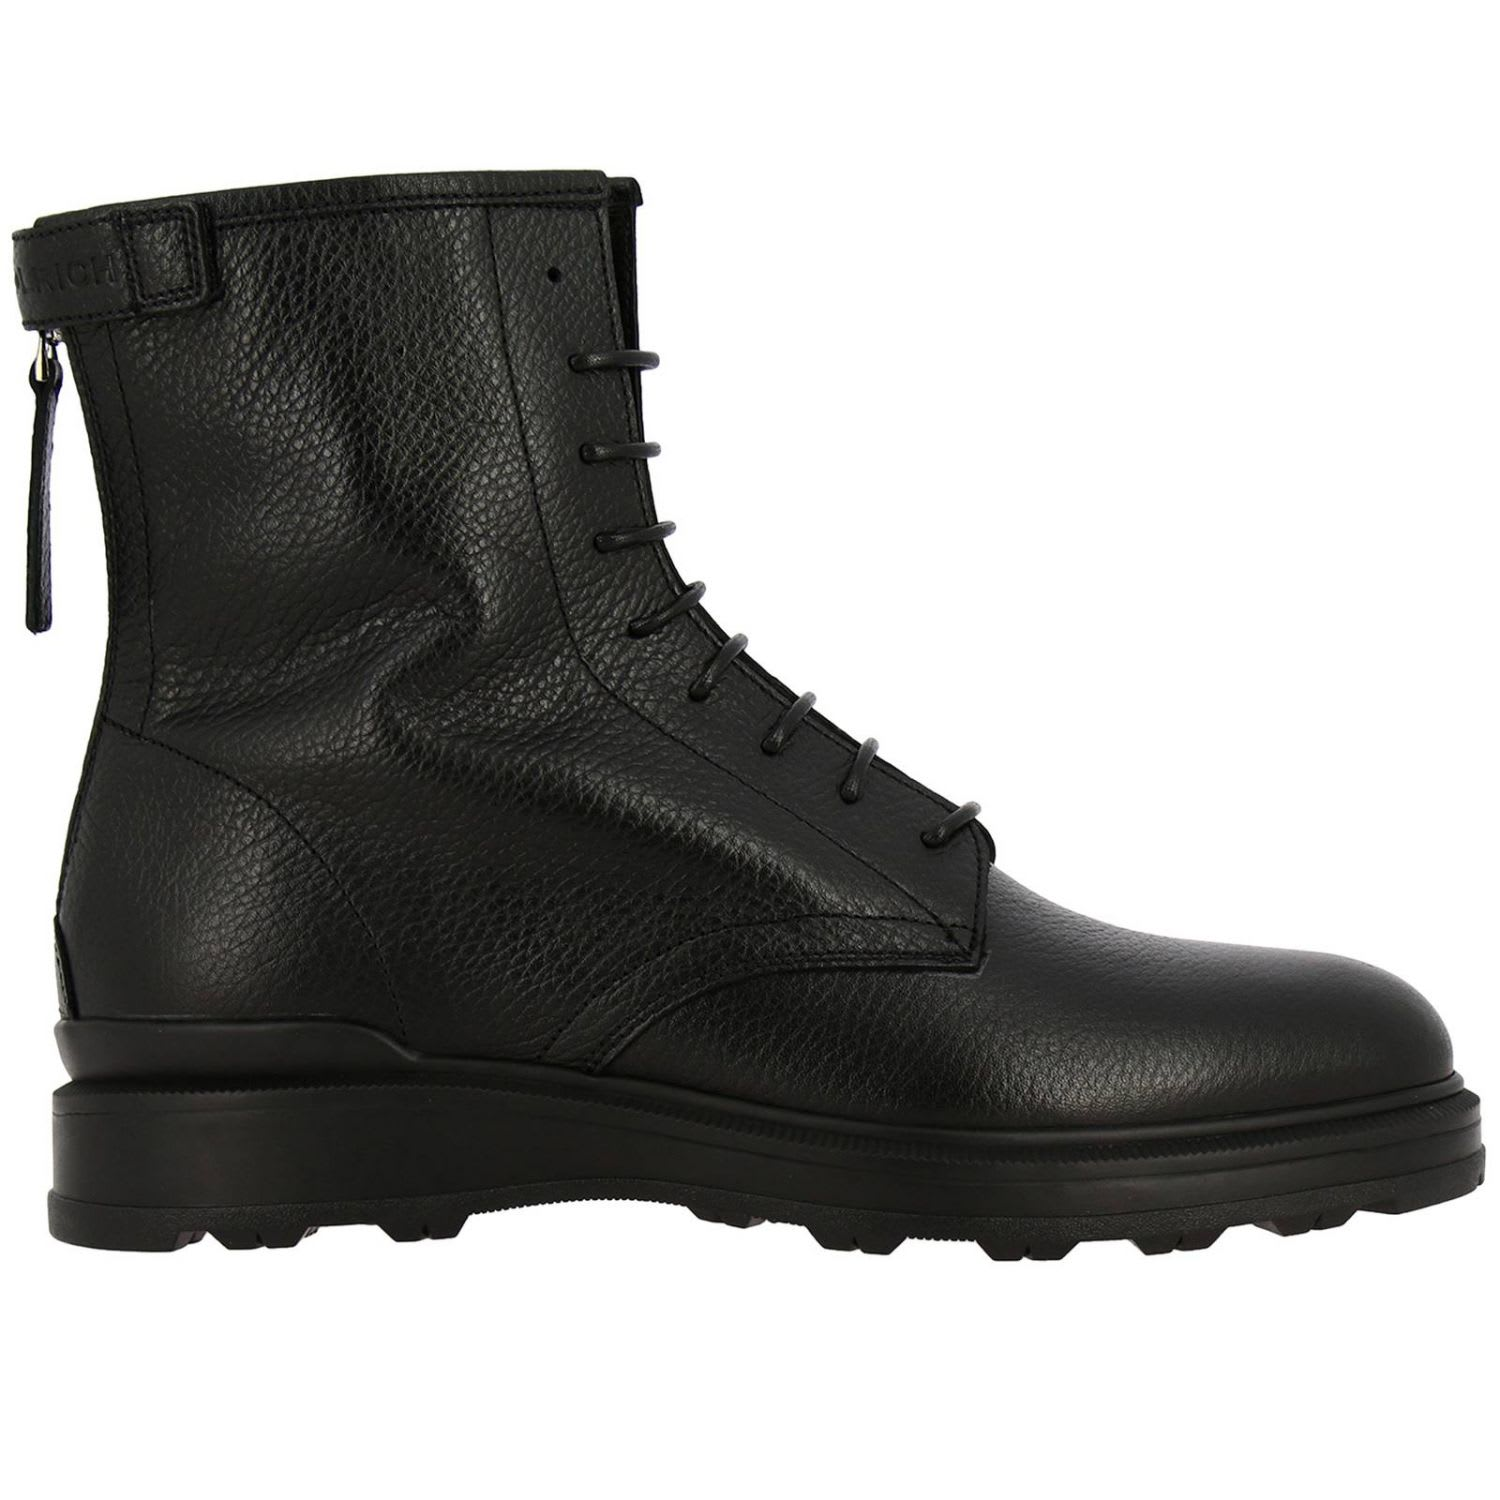 Woolrich Boots Woolrich Ankle Boots In Leather With Zip